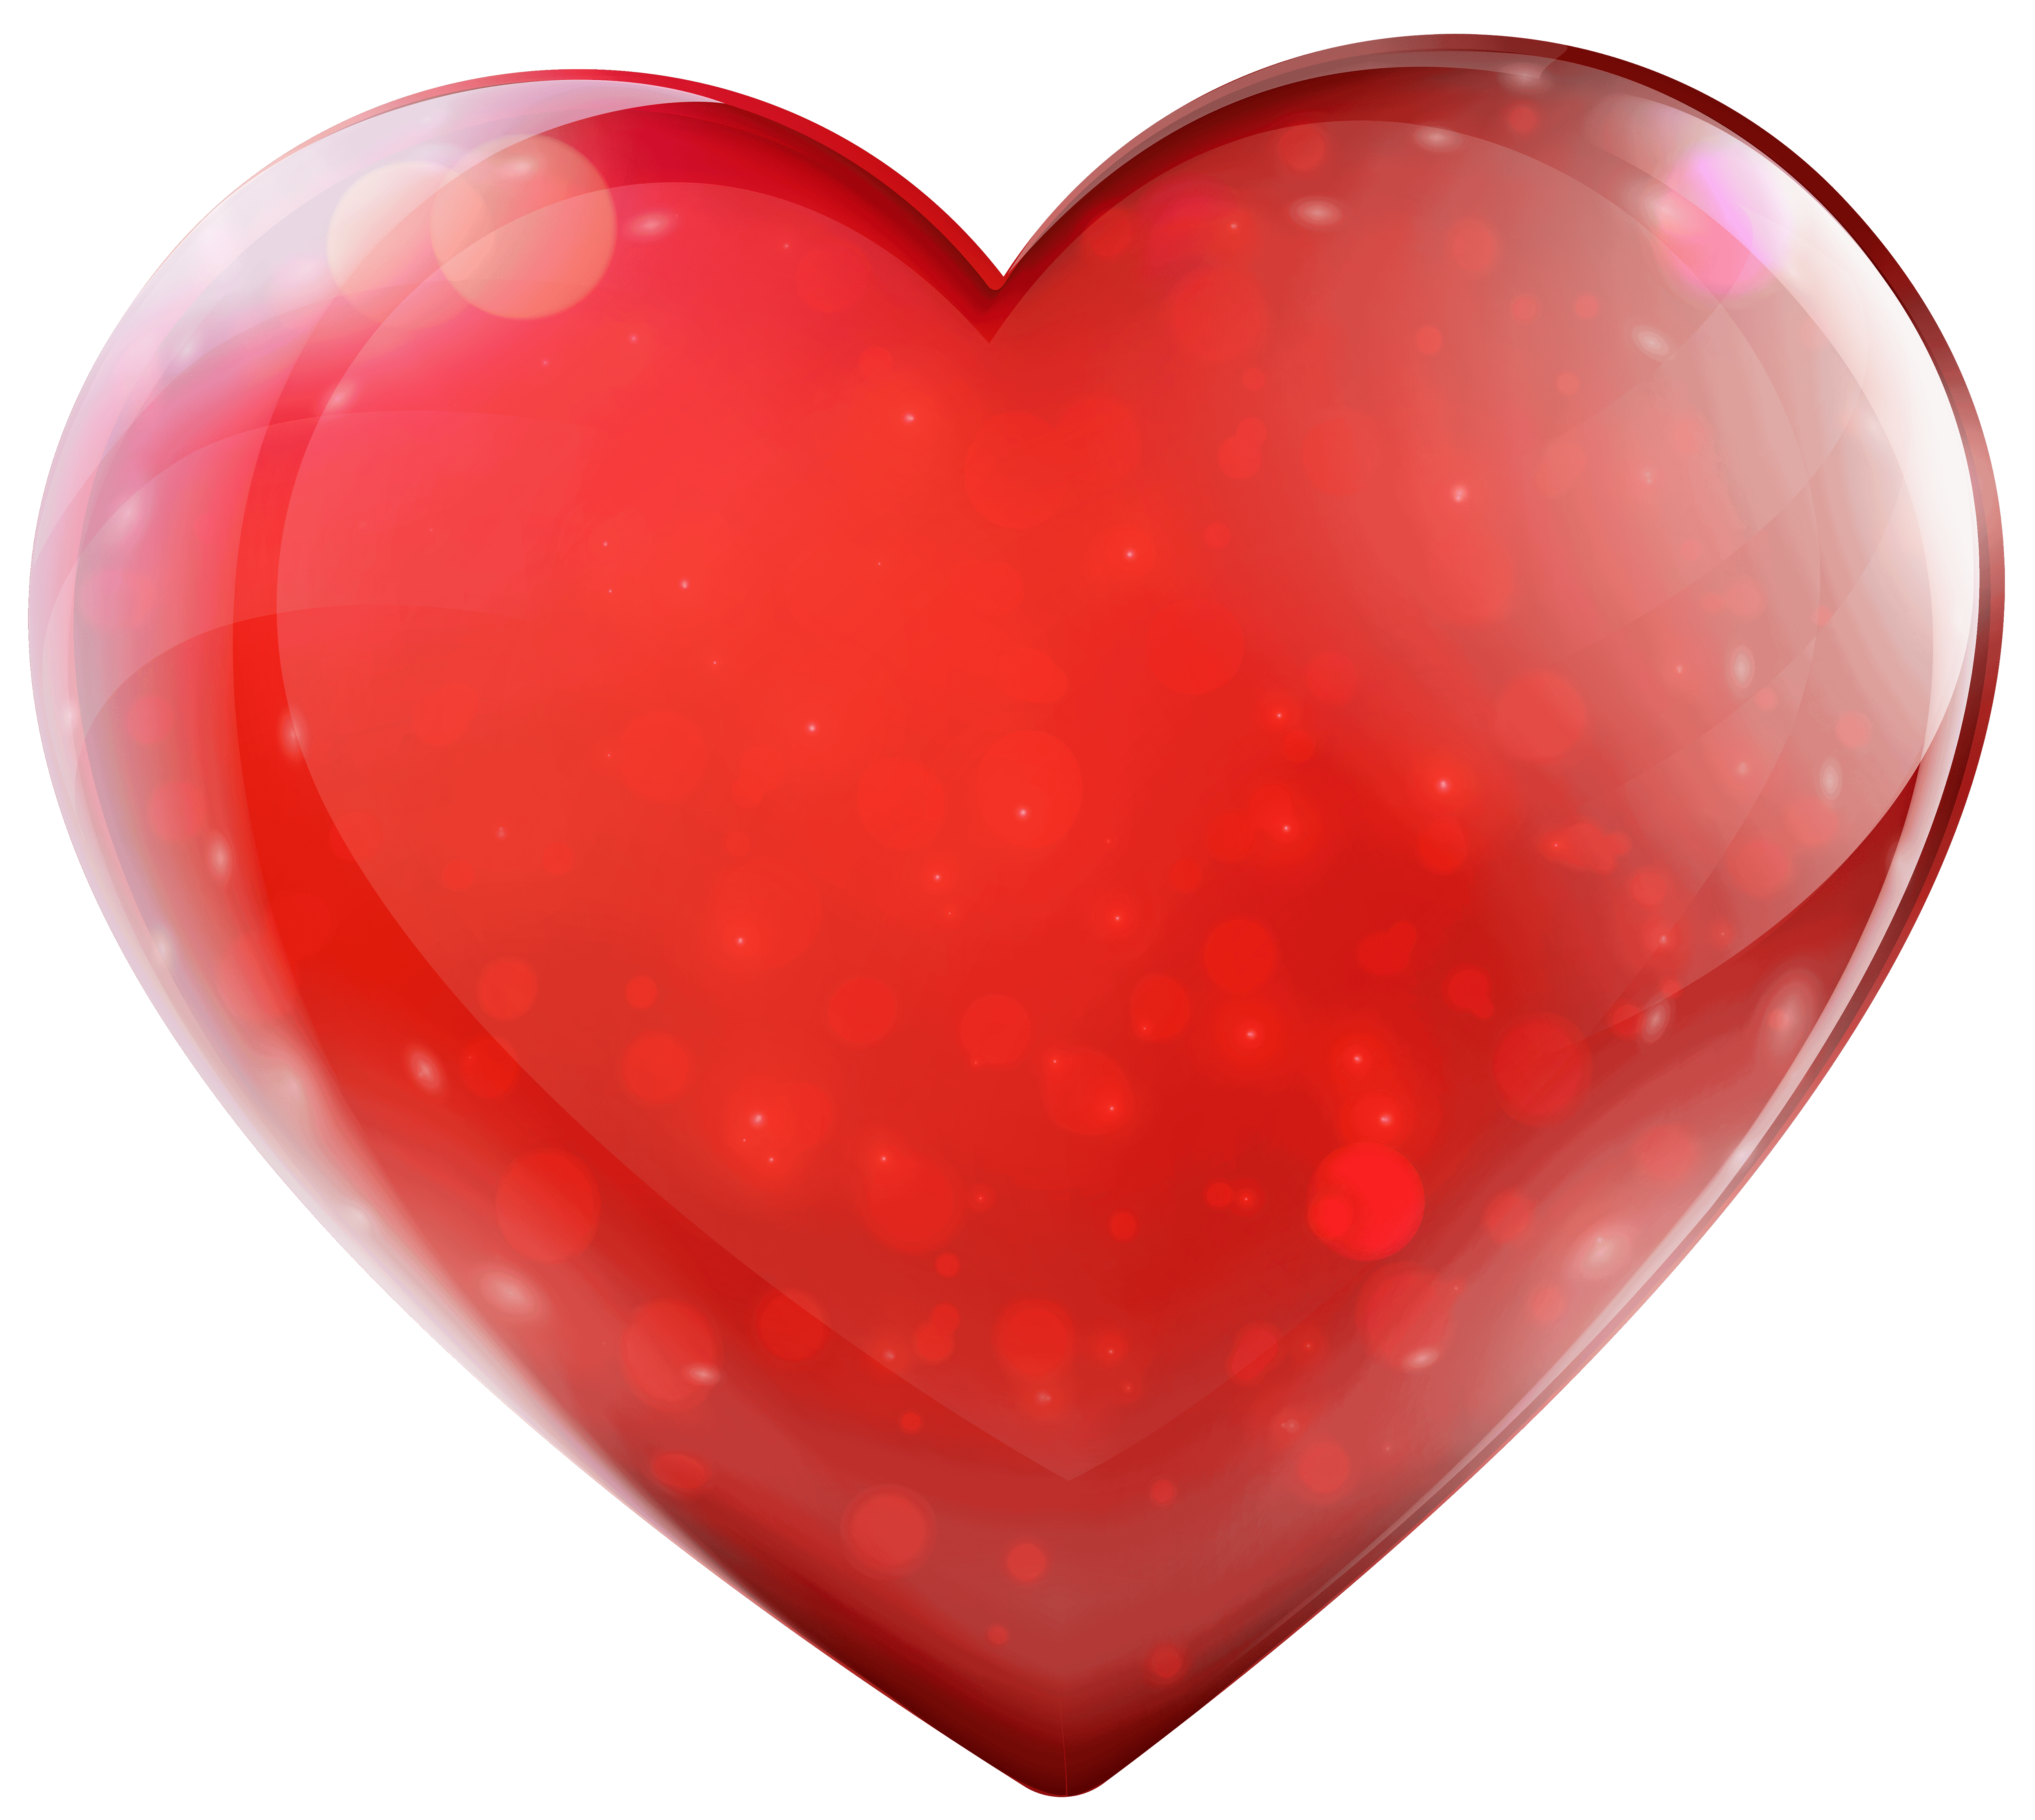 Glassy Heart Png Clipart - Heart, Transparent background PNG HD thumbnail